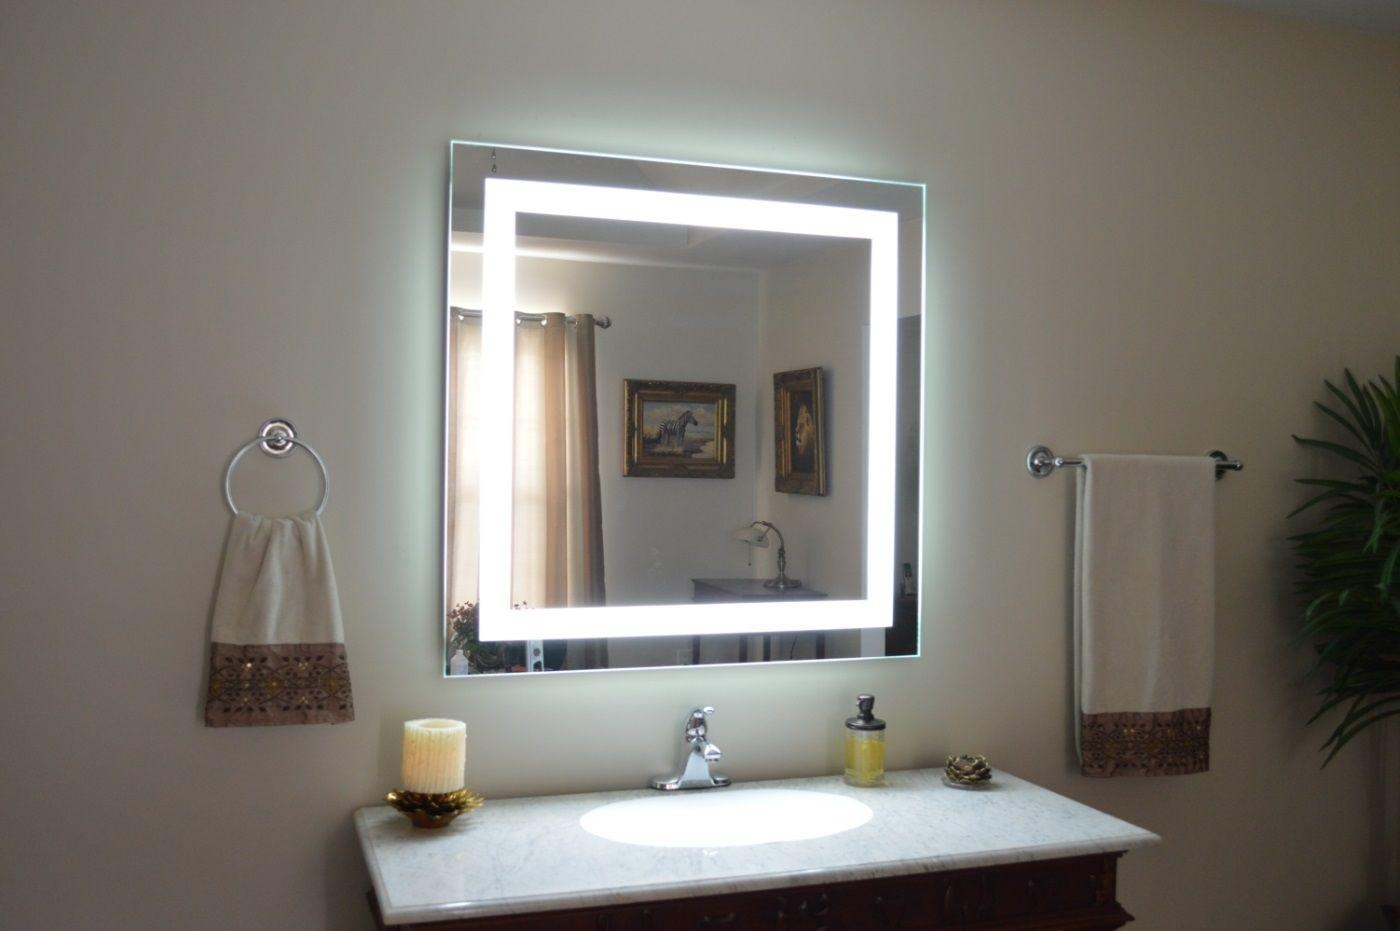 Bathroom Cabinets : Led Illuminated Lighted Bathroom Cabinets With Within Light Up Bathroom Mirrors (View 12 of 20)